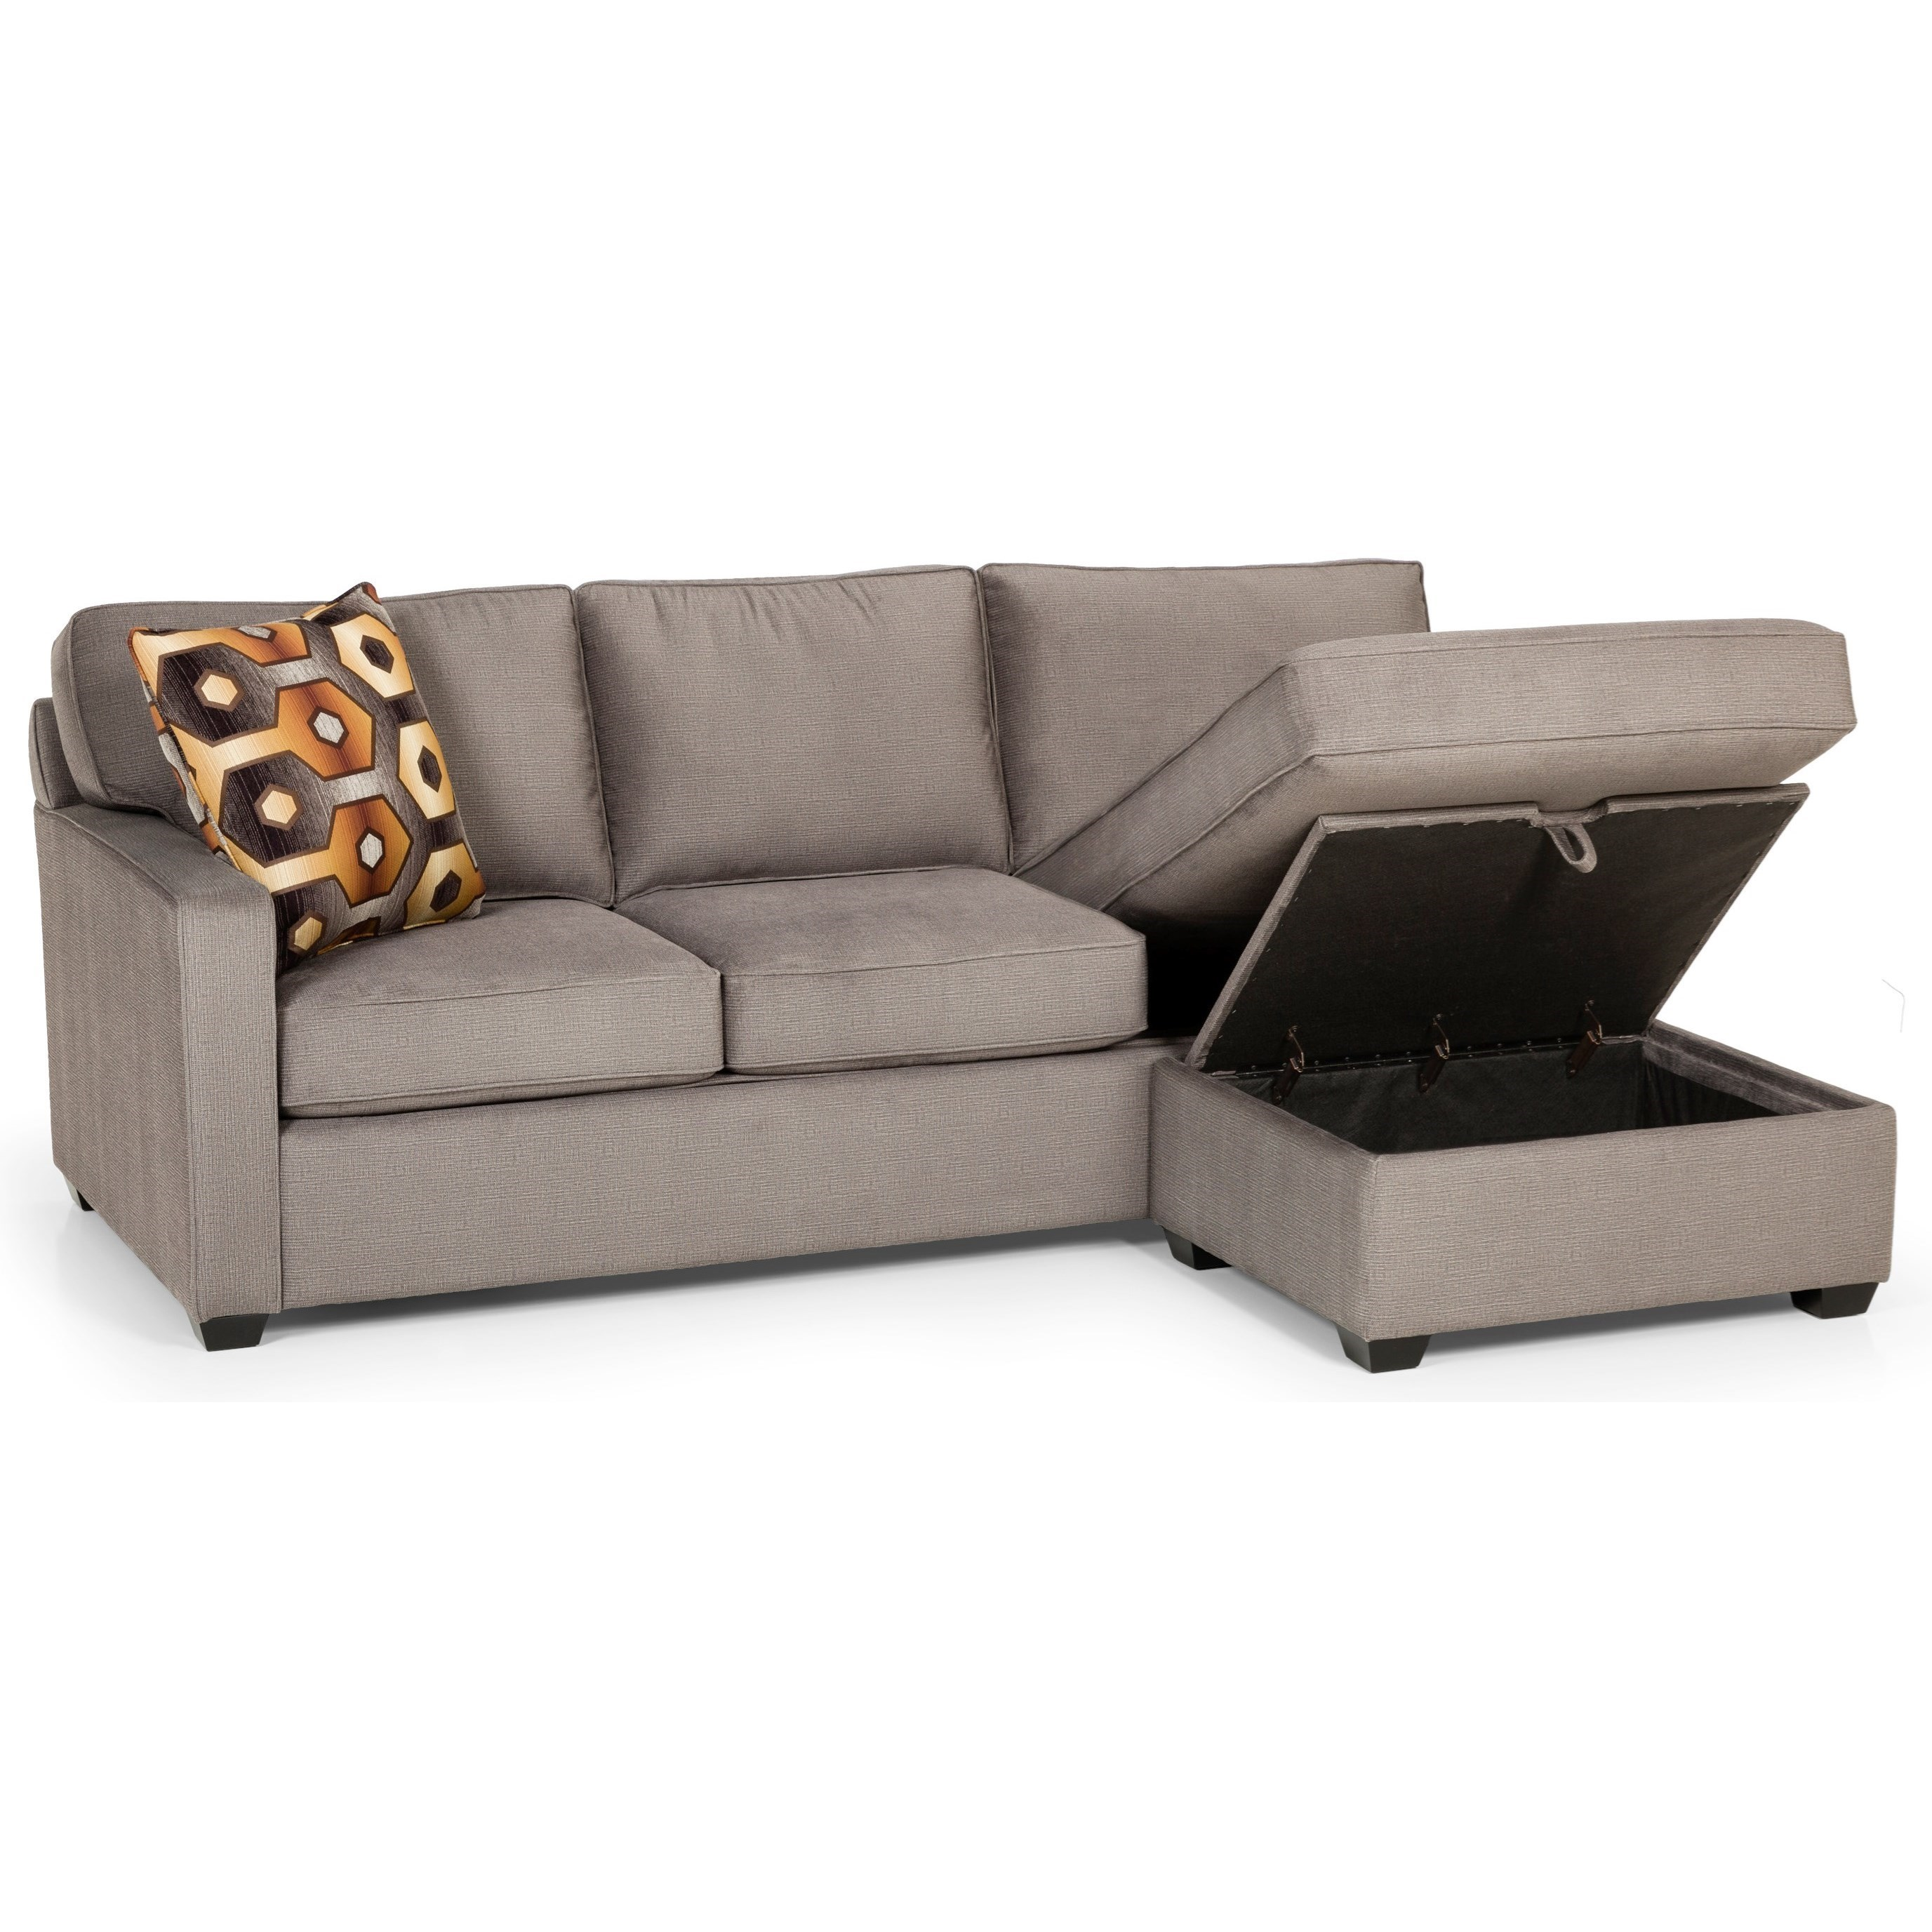 Queen Sofa Bed Ottoman Stanton 403 Casual Sofa Chaise Queen Gel Sleeper With Storage